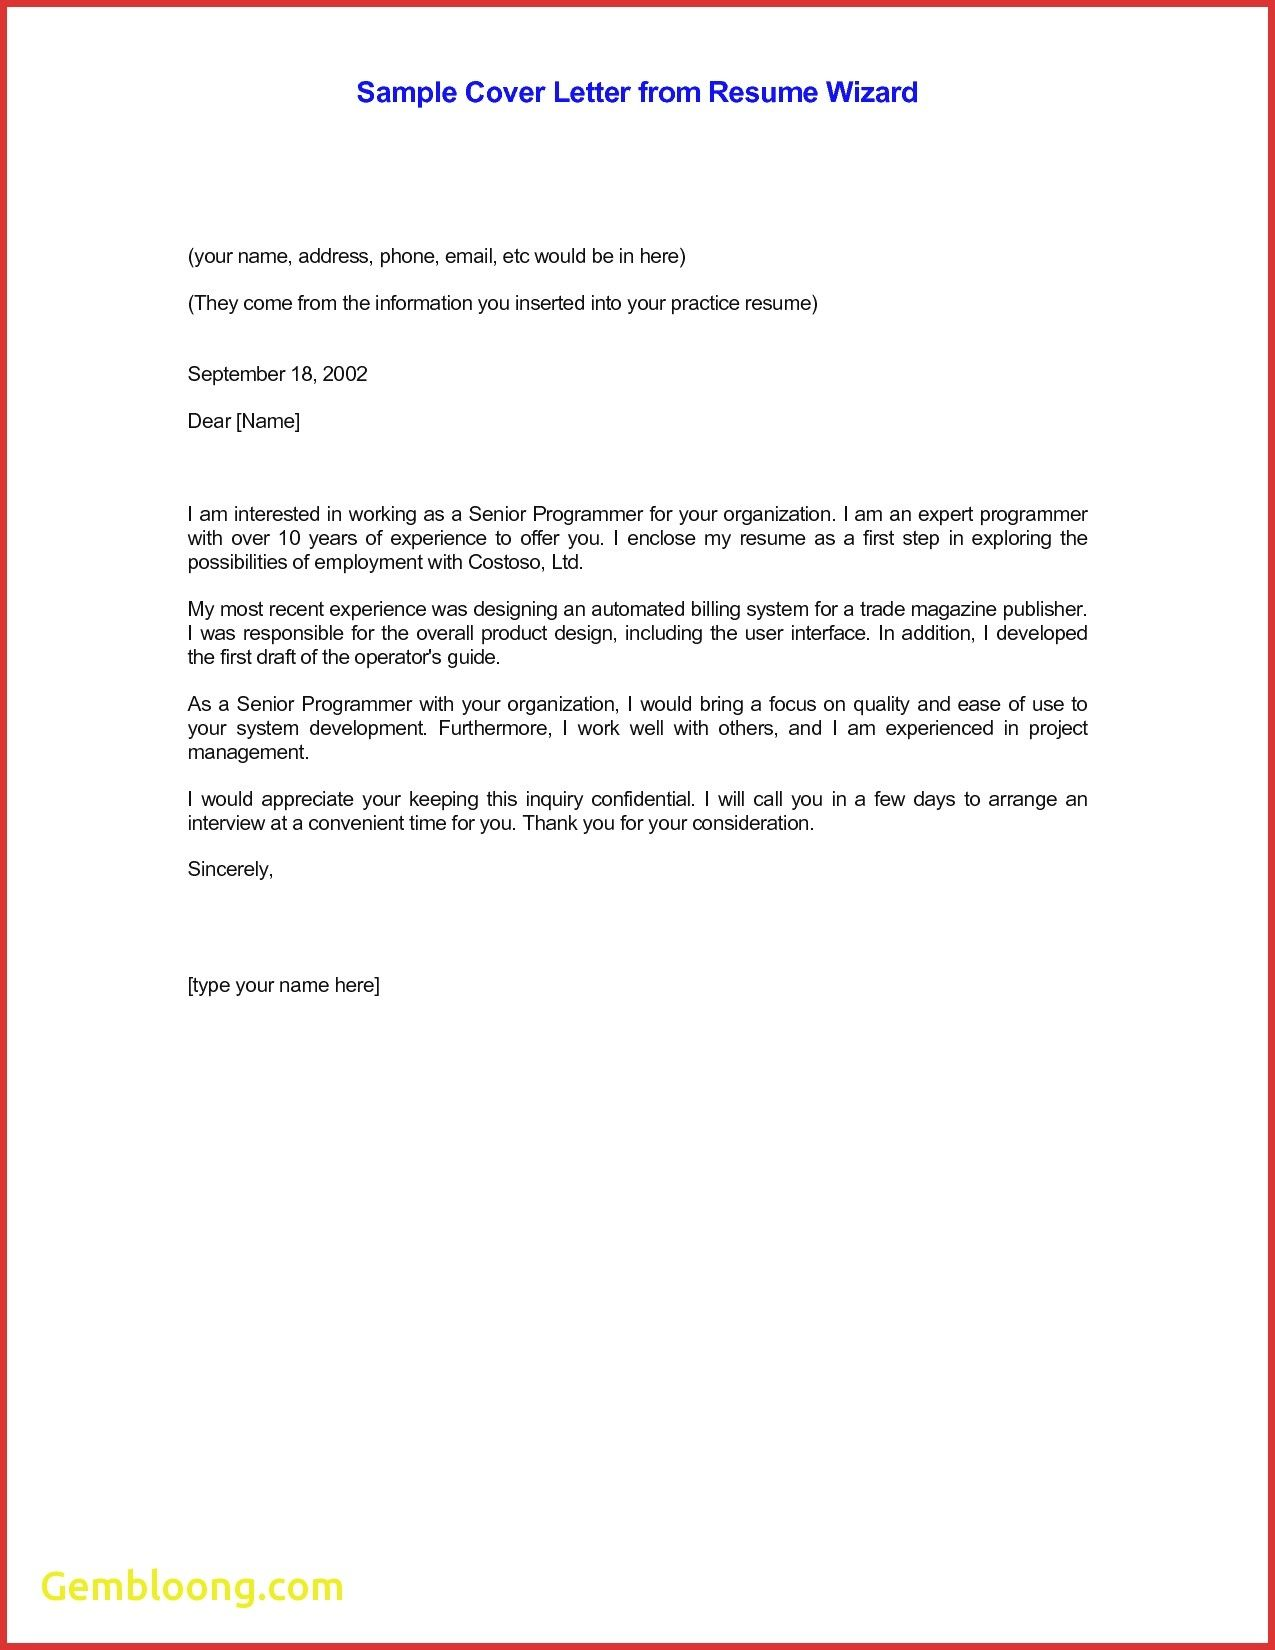 format for email cover letter - Yatay.horizonconsulting.co